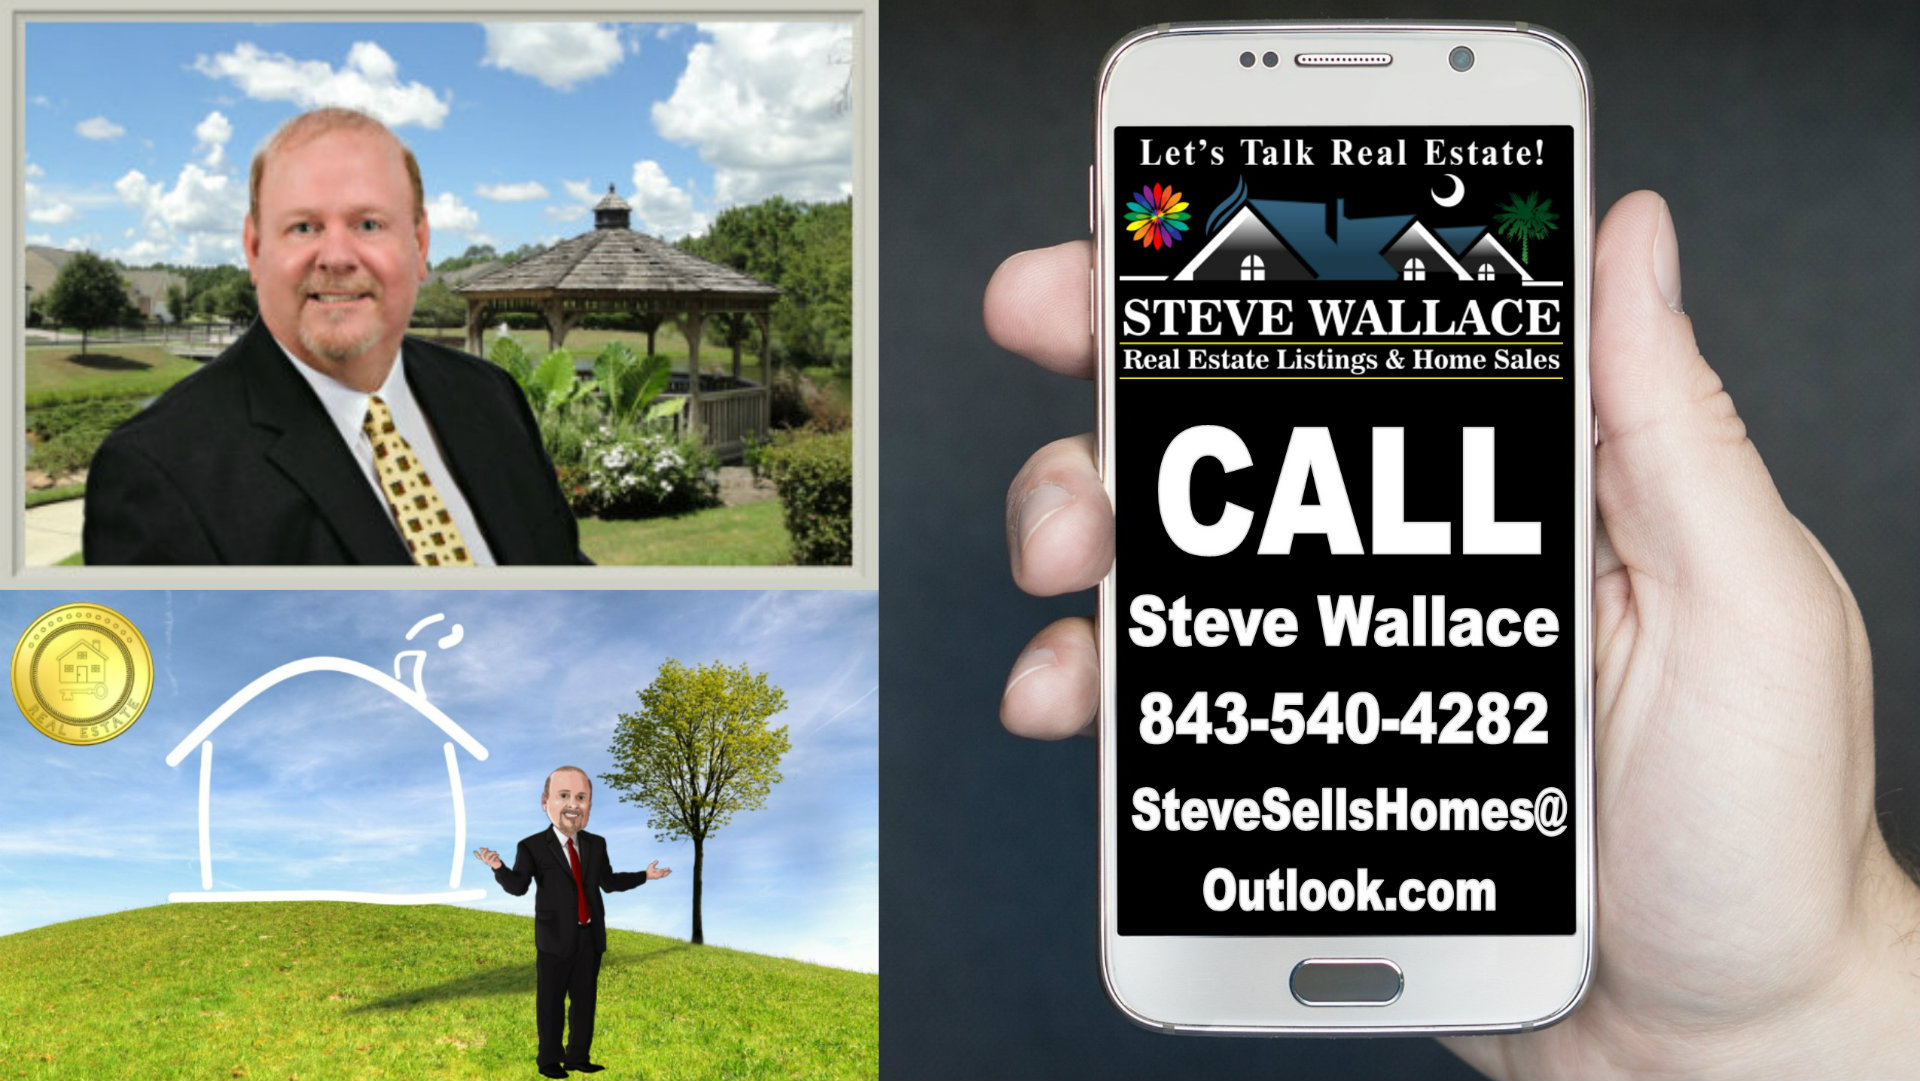 Call, Bluffton SC Real Estate Agent, Steve Wallace, Realtor, Let's Talk